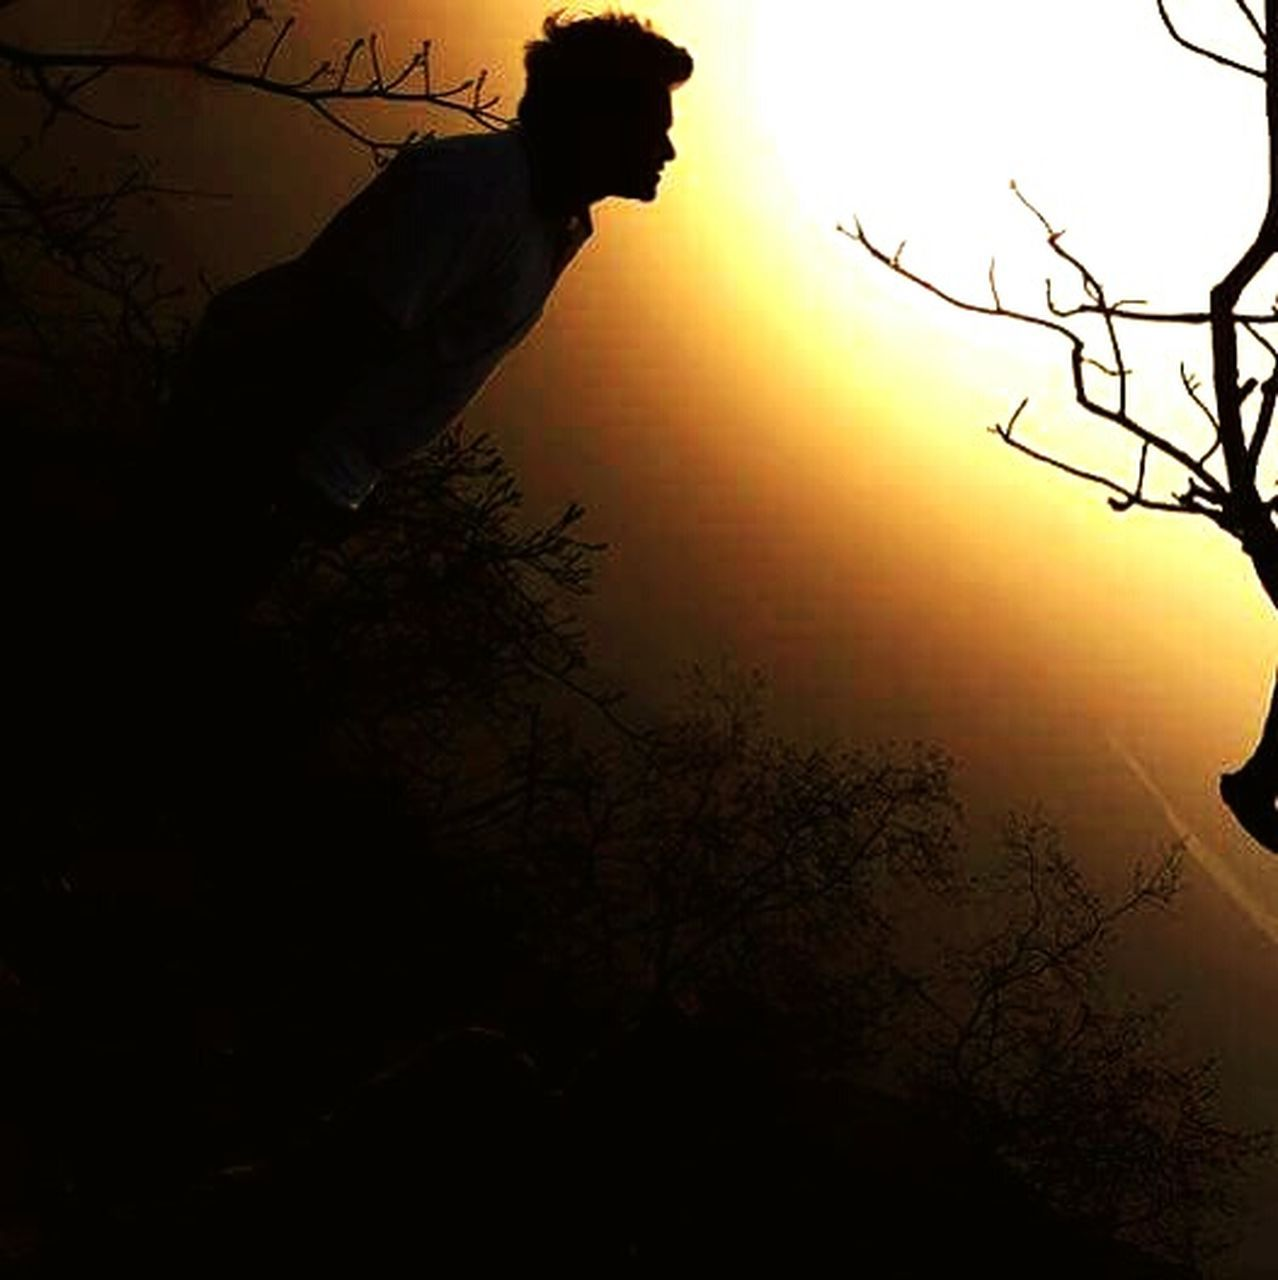 silhouette, sunset, tree, one animal, animal, nature, animal themes, animals in the wild, bare tree, branch, mammal, beauty in nature, outdoors, animal wildlife, sky, no people, scenics, domestic animals, bird, african elephant, day